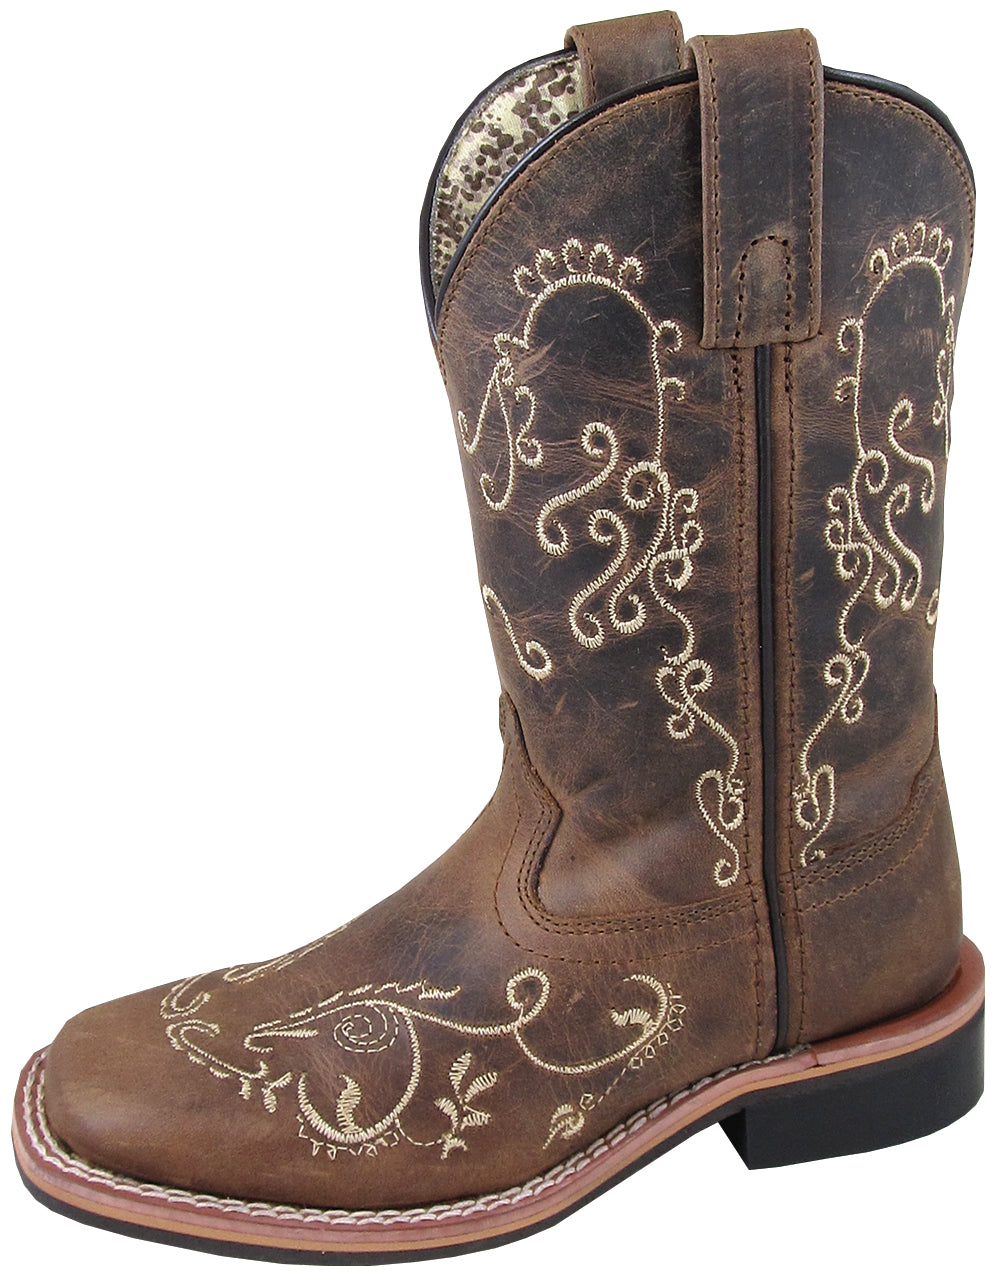 'Smoky Mountain' Children's Marilyn Western Square Toe - Brown Waxed